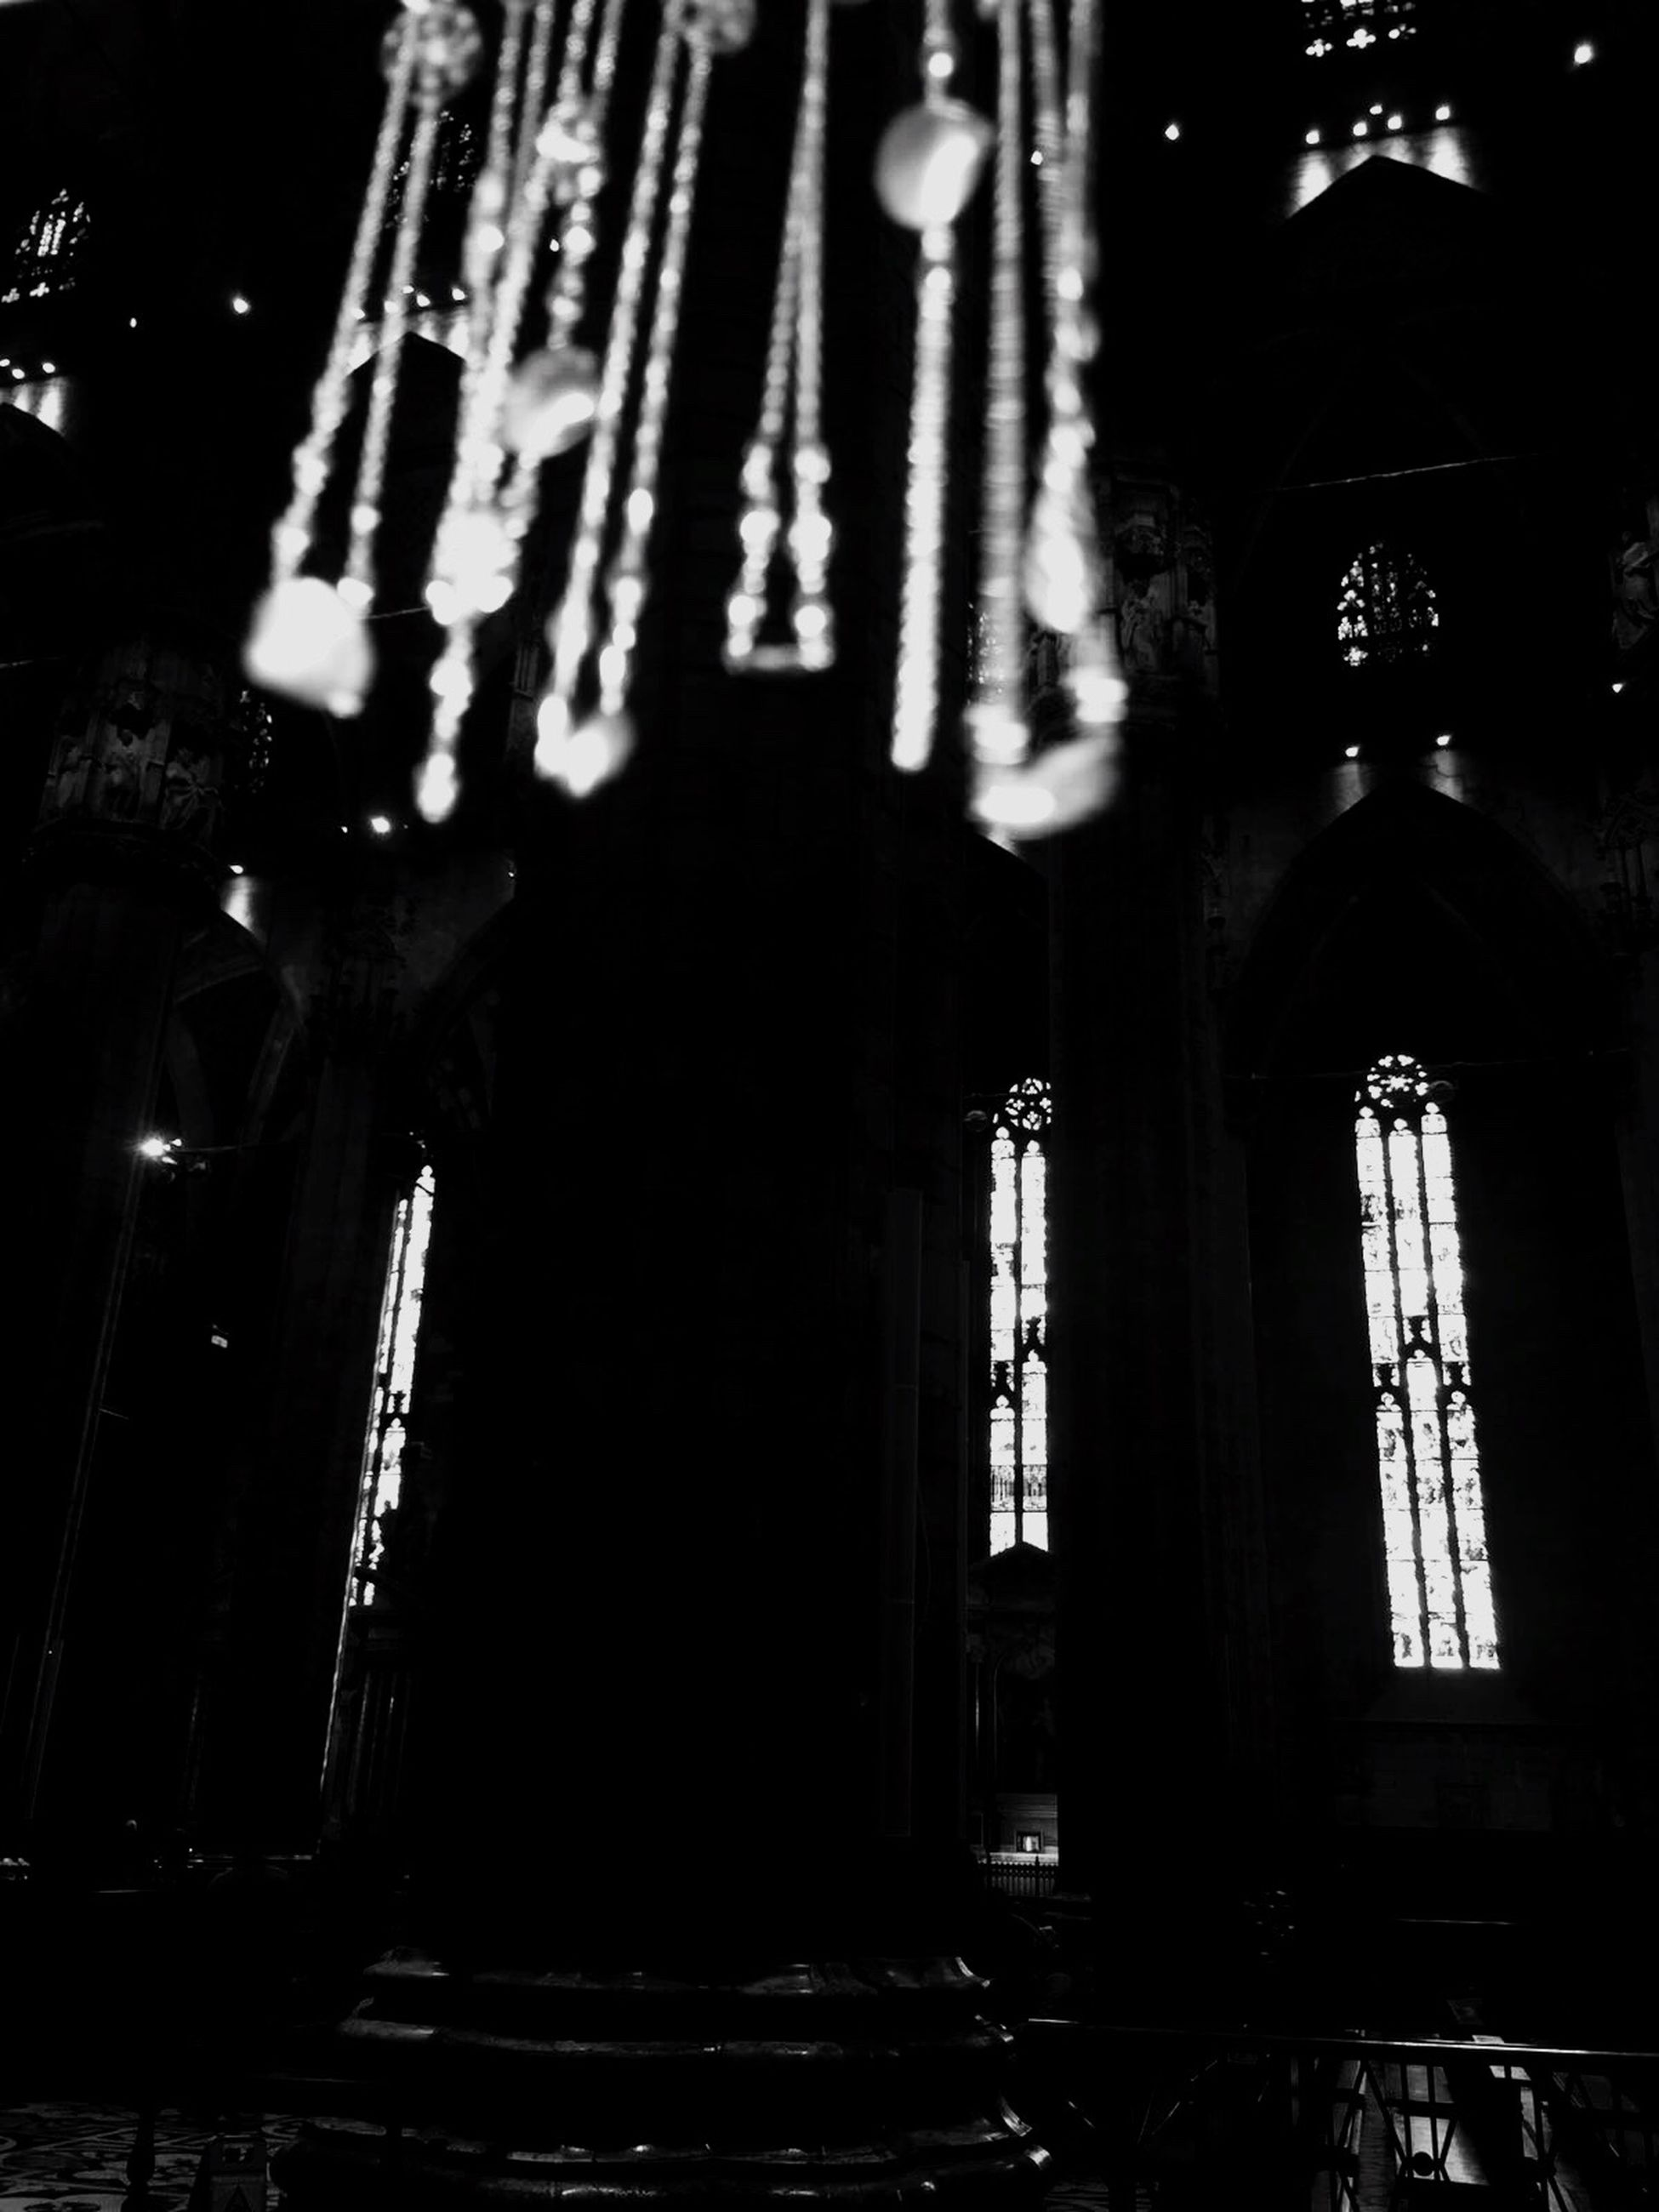 architecture, built structure, building exterior, night, illuminated, low angle view, religion, window, church, place of worship, indoors, spirituality, no people, house, glass - material, building, lighting equipment, old